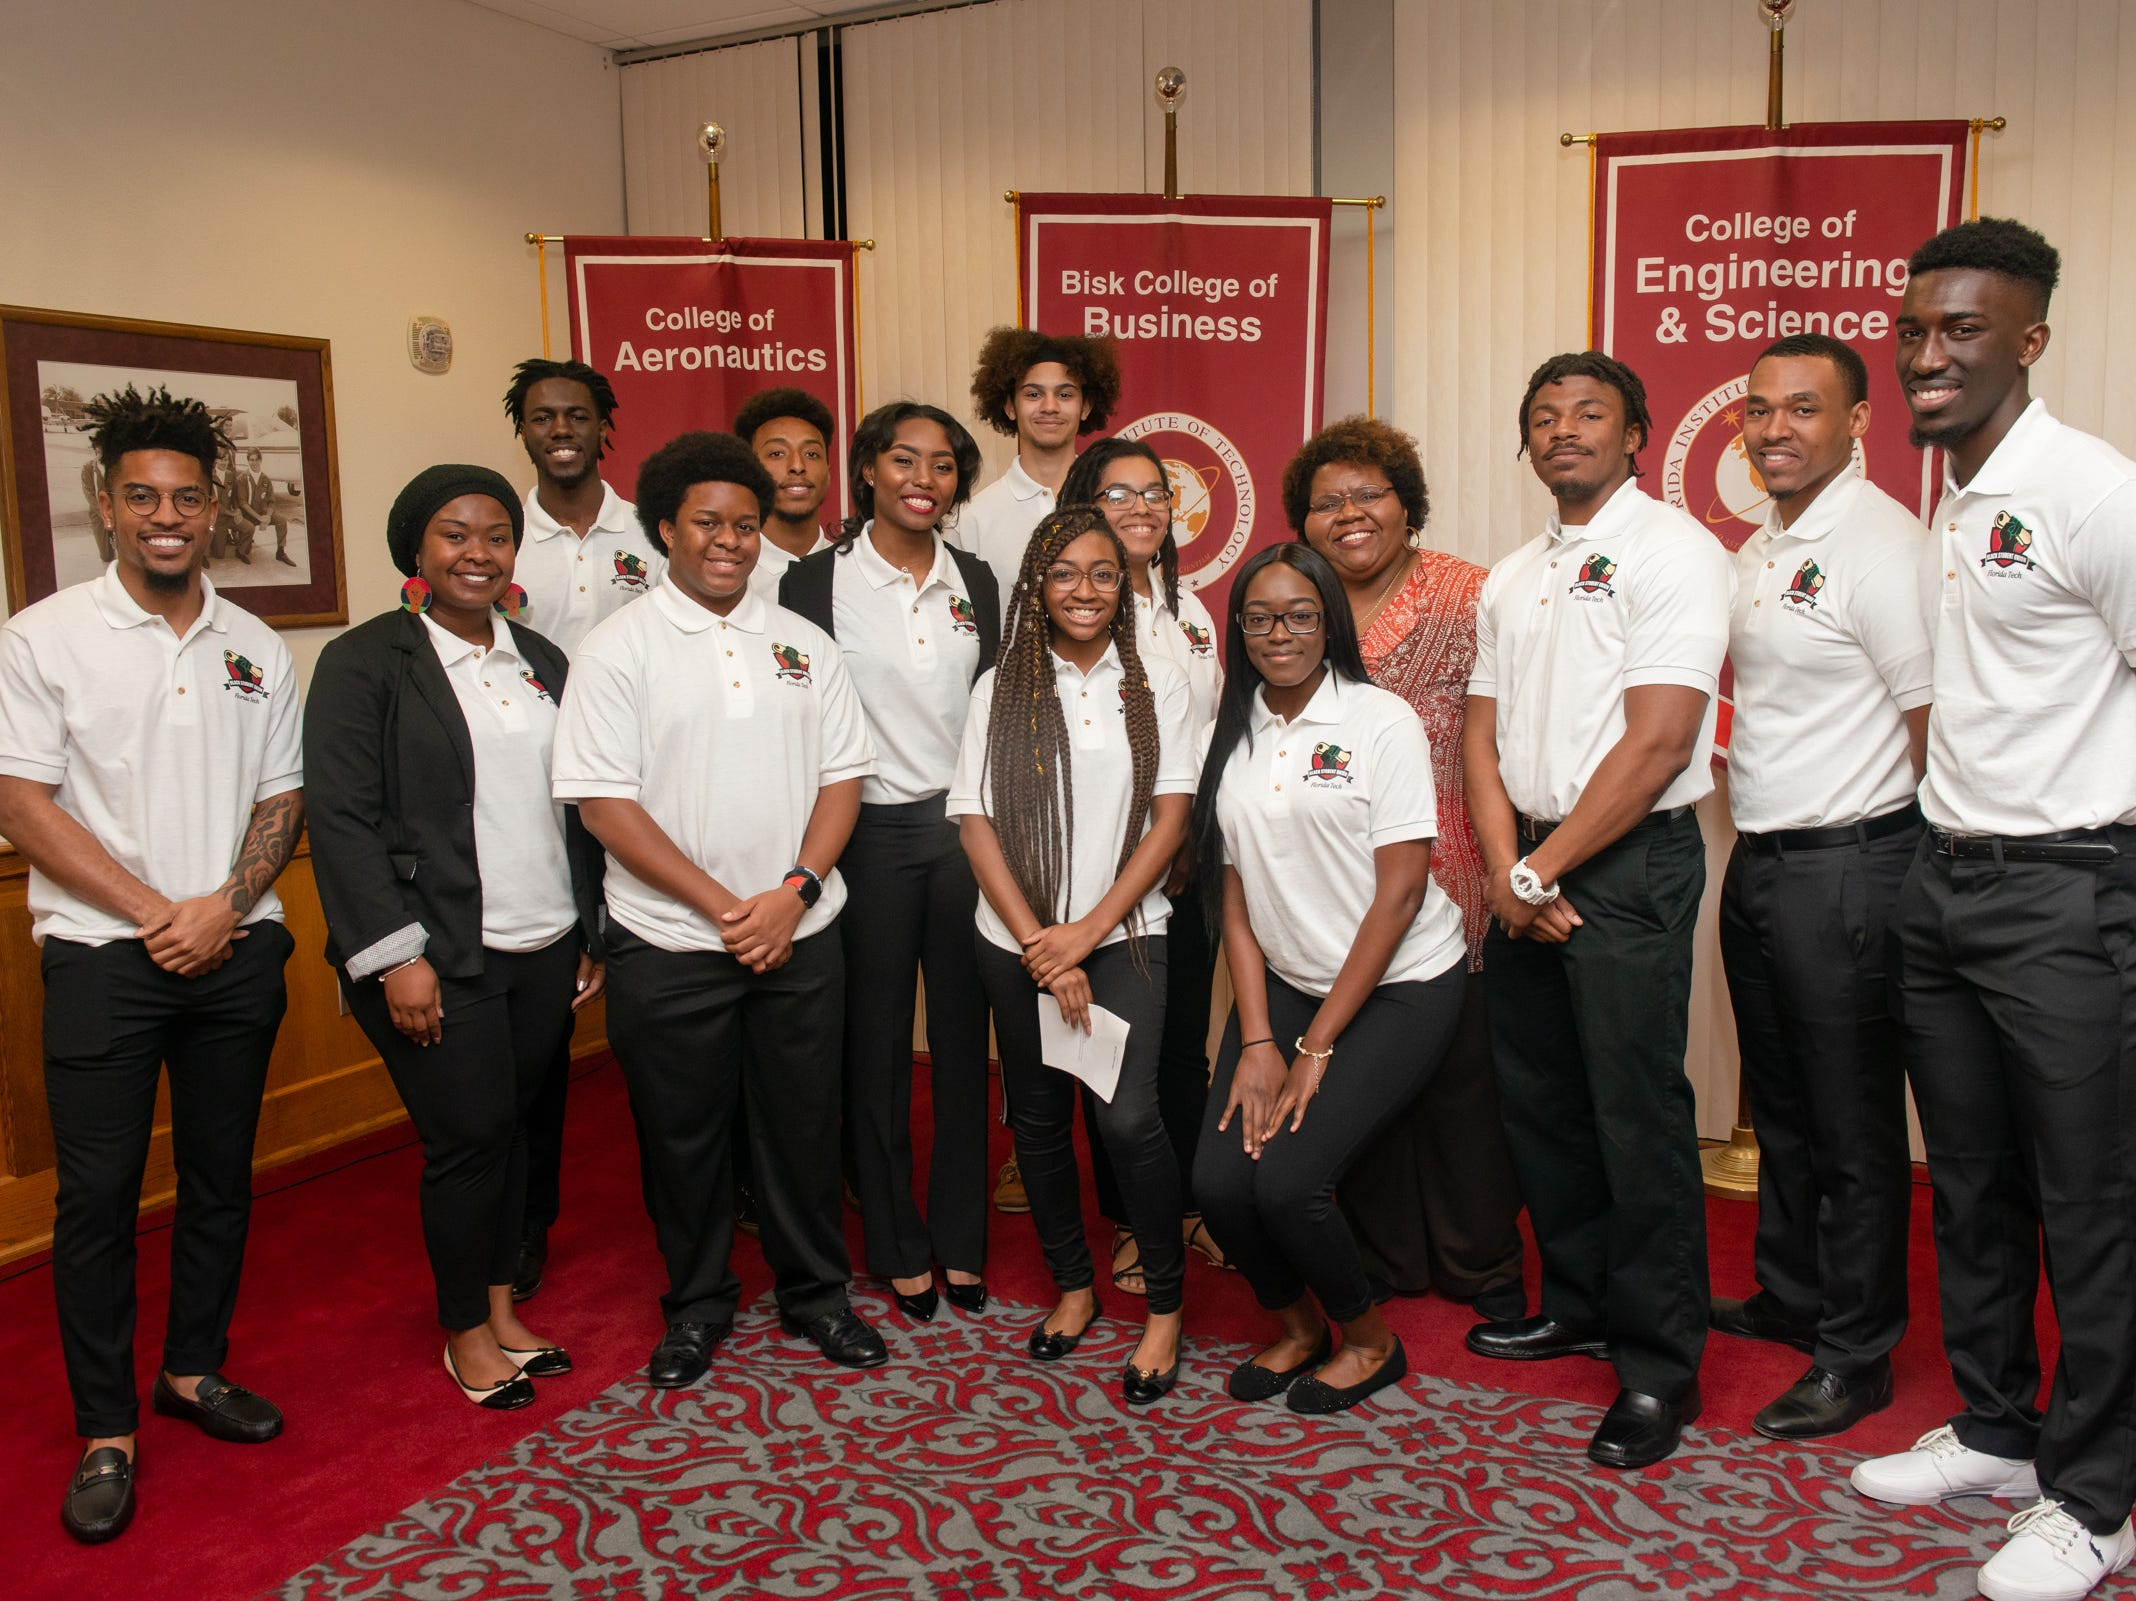 Members of Florida Tech's Black Student Union at the Julius Montgomery Pioneer Award and the Dr. Harvey L. Riley Bridge Builder Award presentation in celebration of Martin Luther King Jr. Day.